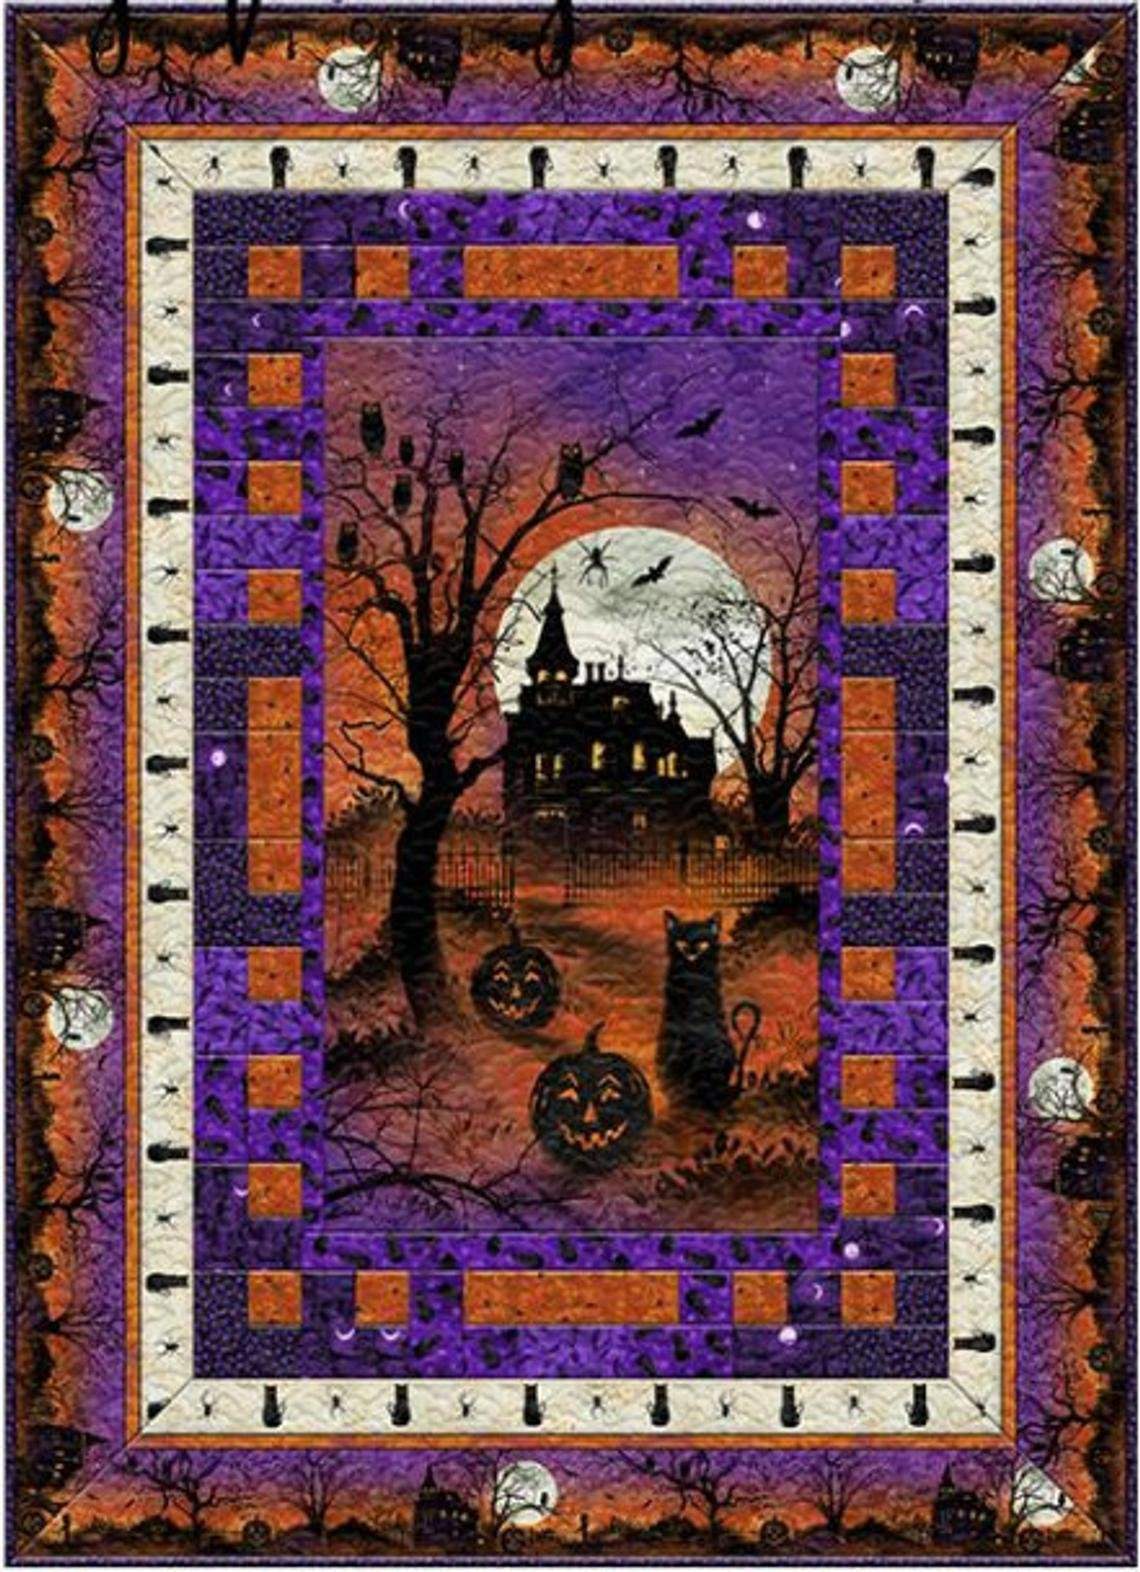 FRIGHTFUL NIGHT WITH WILMINGTON PRINTS